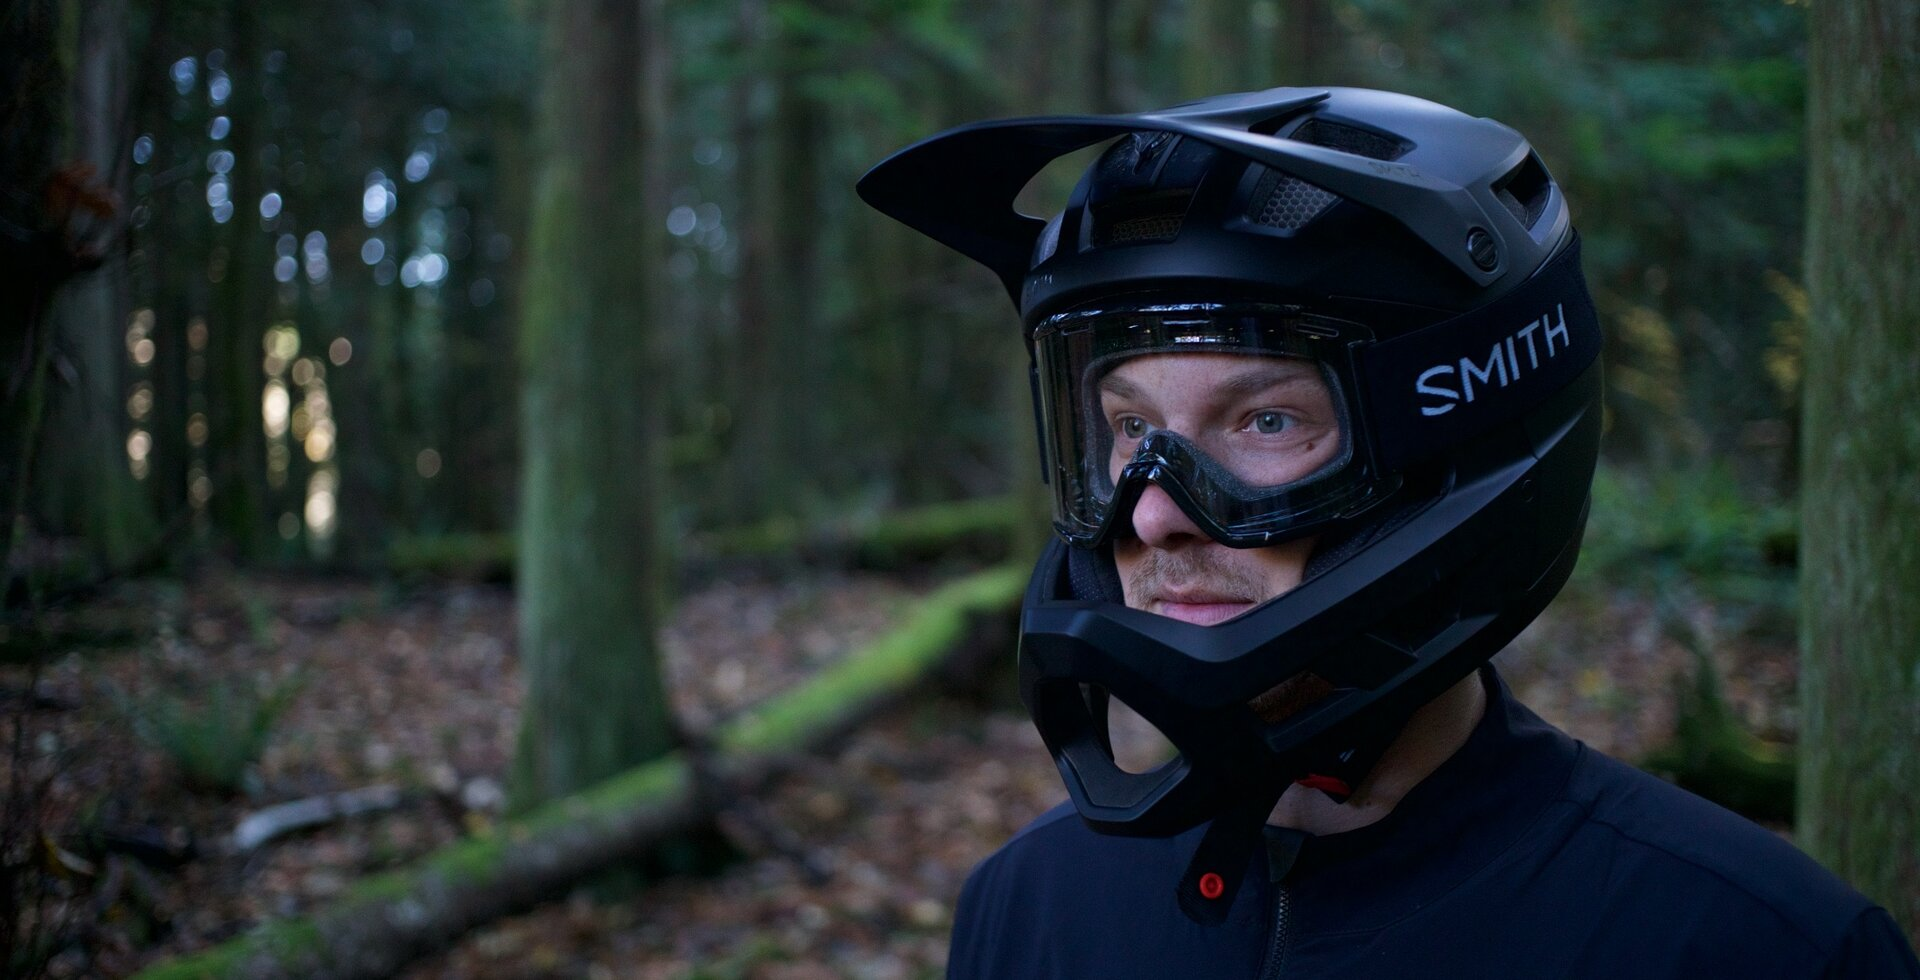 The Mainline is Smith's downhill certified enduro bike helmet, and their first full face helmet offering.